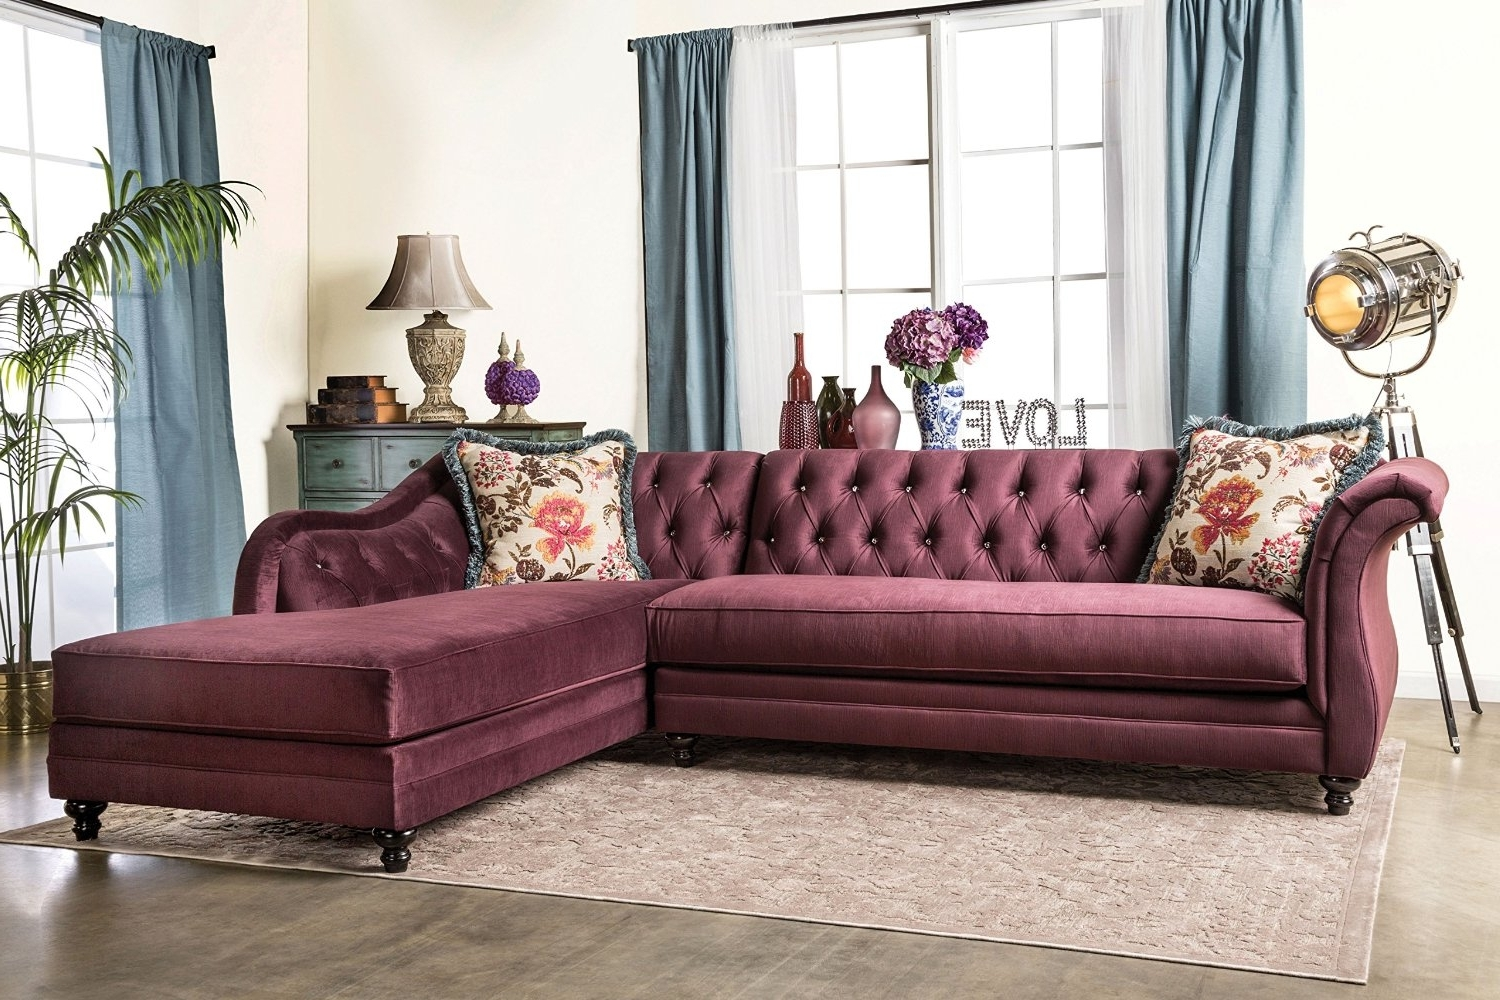 Target Sectional Sofas Pertaining To Most Popular Sofa : Target Tufted Loveseat Tufted Leather Furniture White (View 8 of 20)